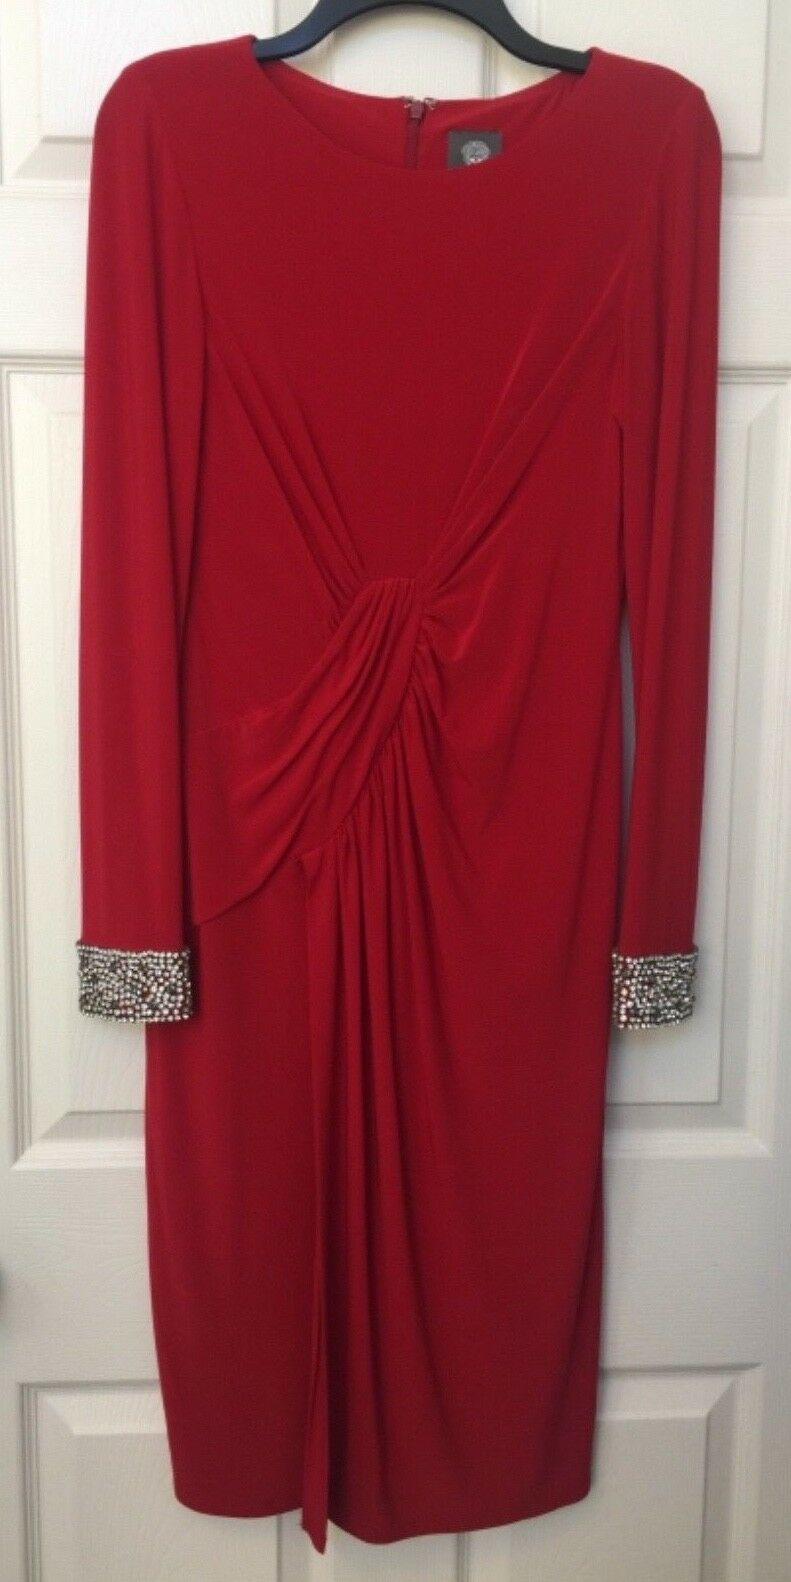 VINCE CAMUTO Womens Embellished Cuff Wrap Dress SZ 6 Pre-owned